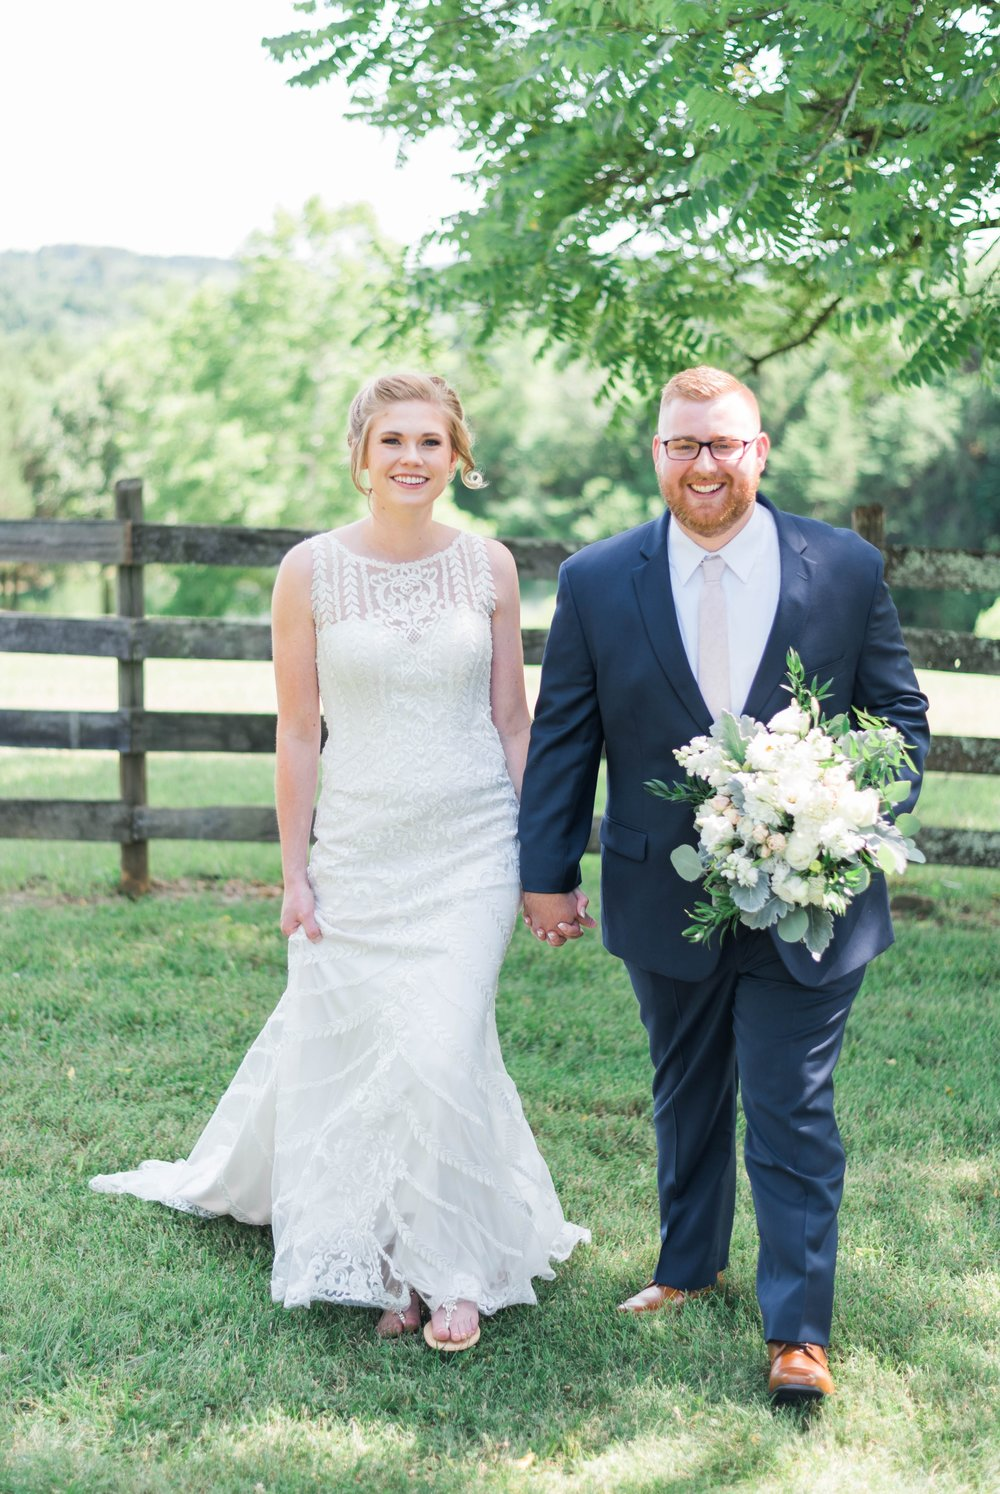 SorellaFarms_VirginiaWeddingPhotographer_BarnWedding_Lynchburgweddingphotographer_DanielleTyler 45.jpg